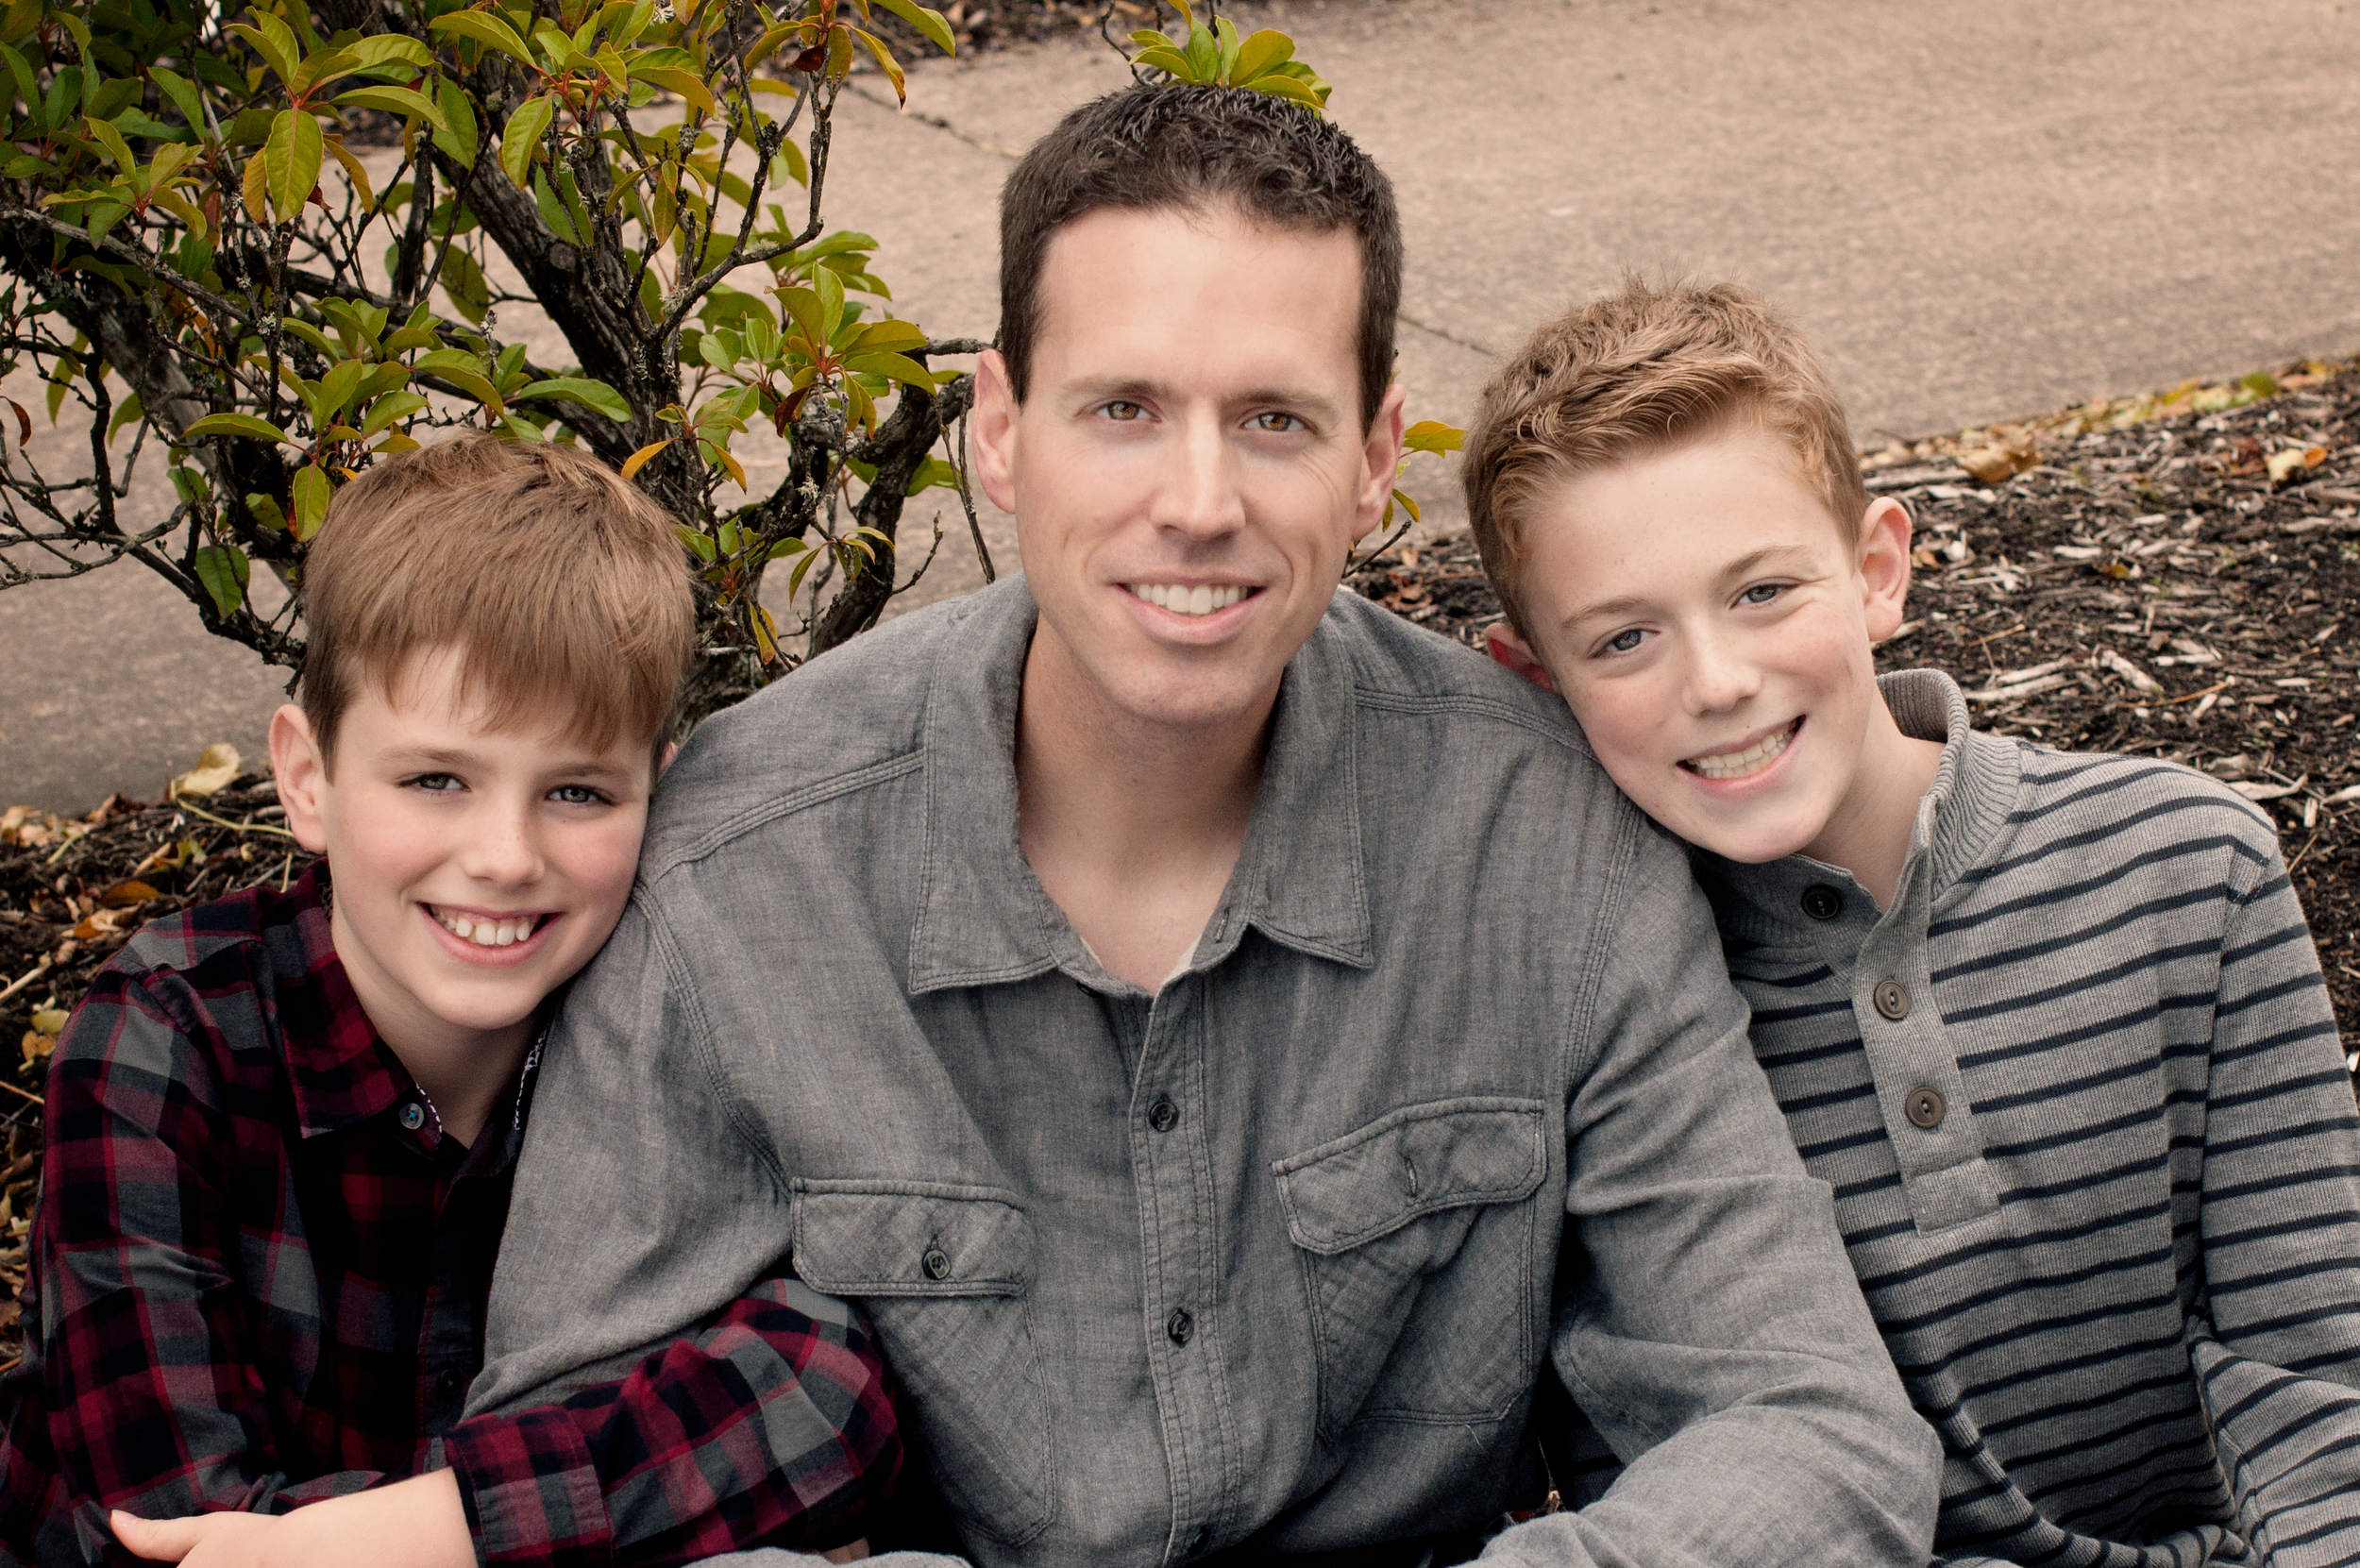 Steph Henstrom Family-Mike and boys crop.jpg